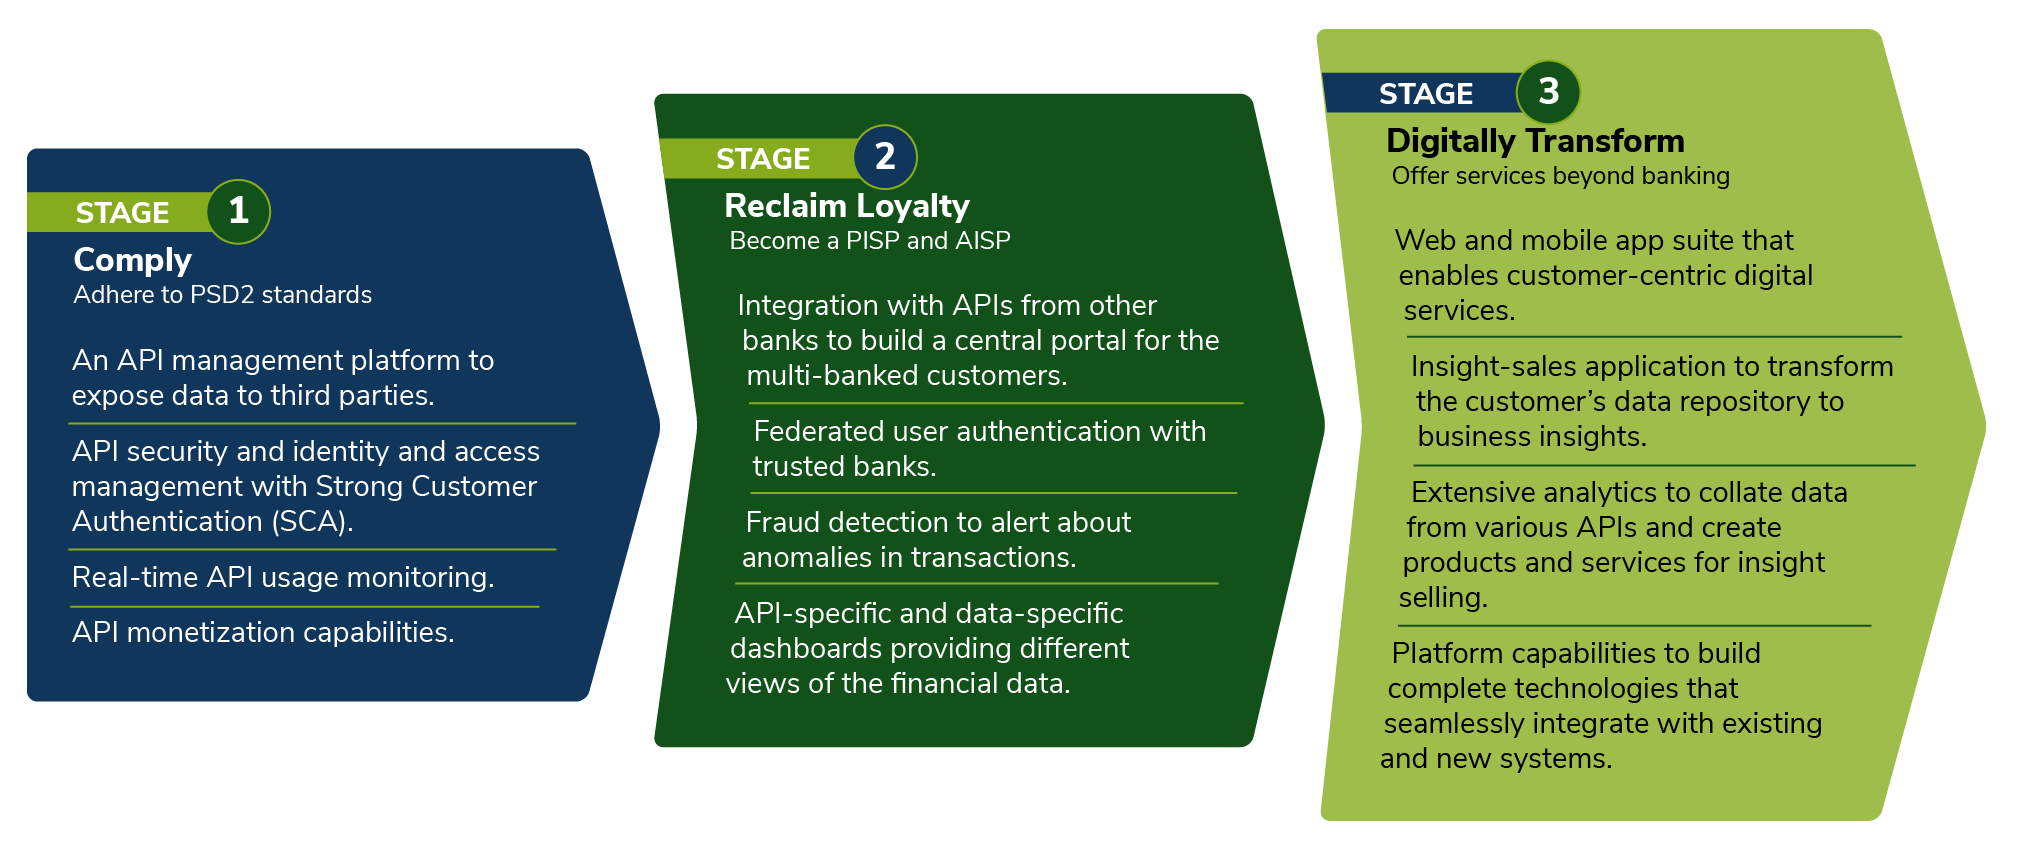 Digital transformation stages in the banking industry